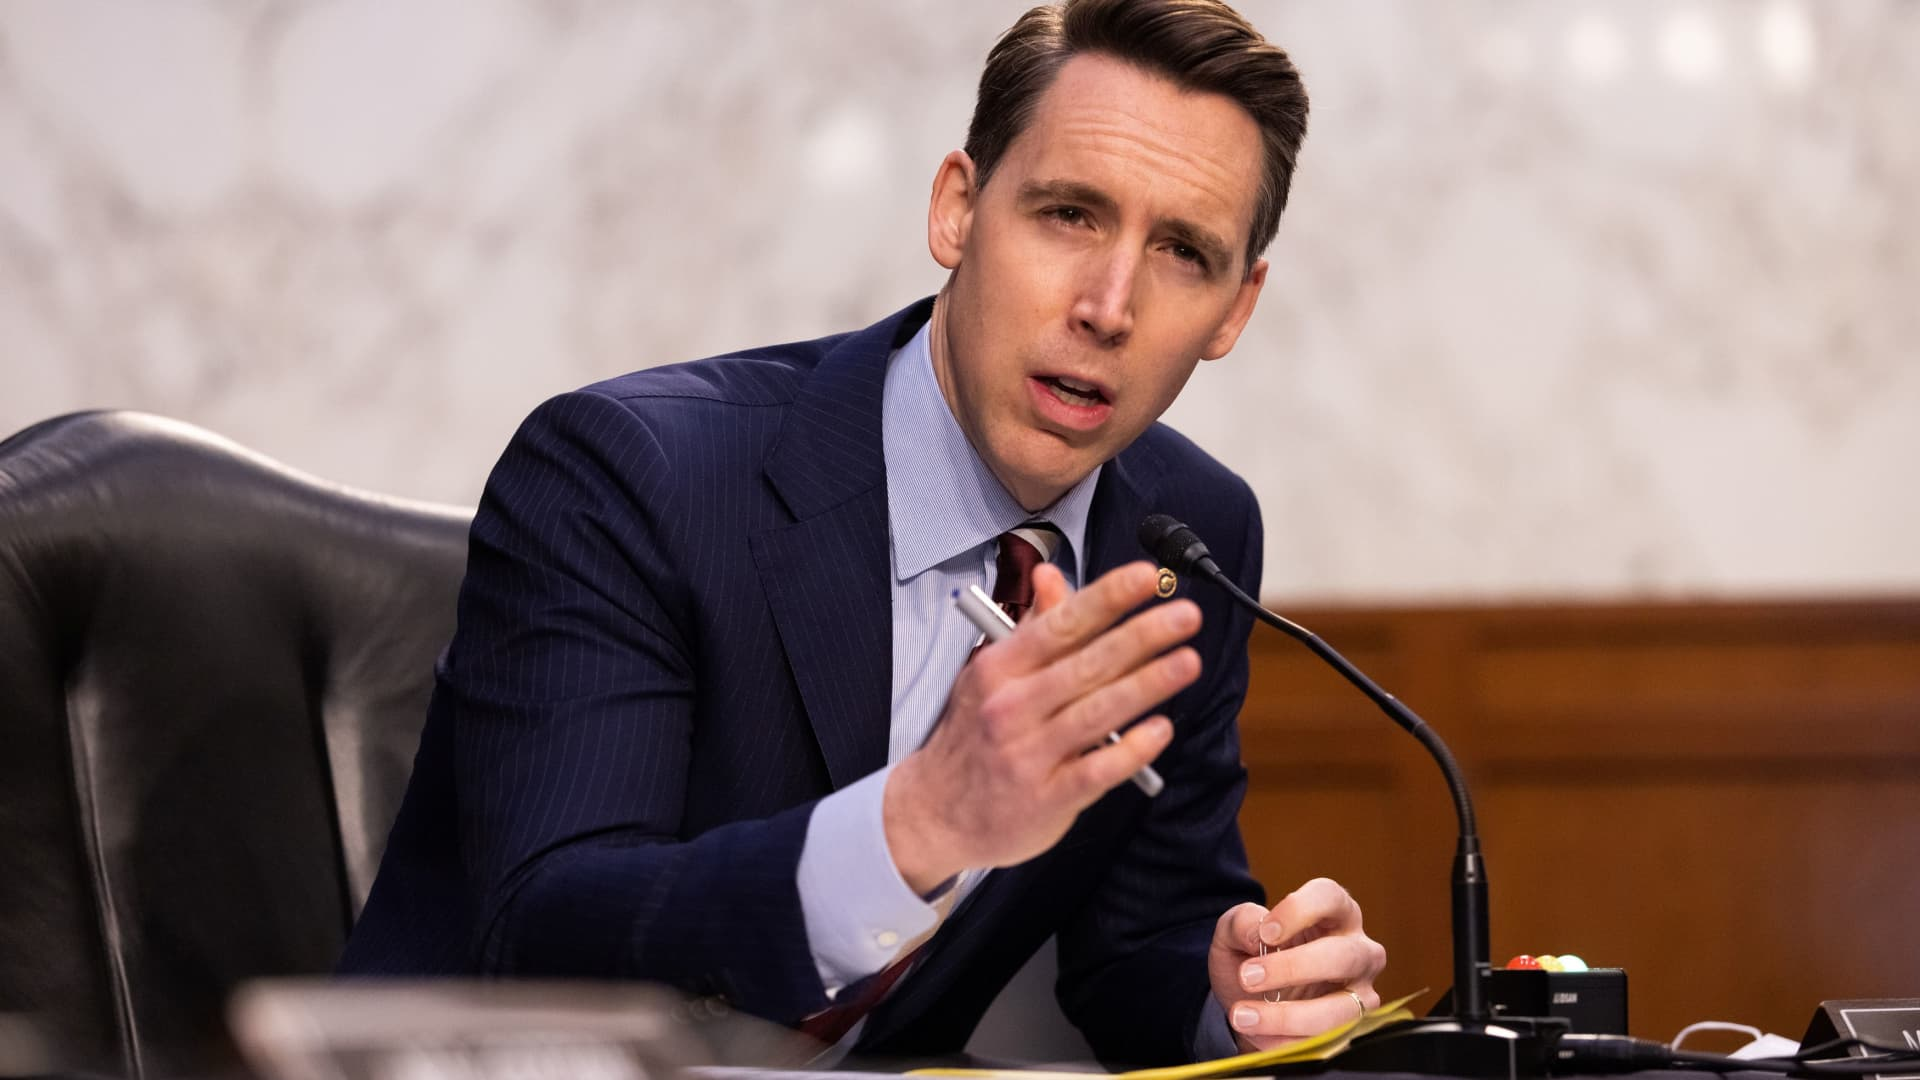 Senator Josh Hawley, R-MO, speaks during a Senate Judiciary Committee hearing on the the January 6th insurrection, in the Hart Senate Office Building on Capitol Hill in Washington, DC, March 2, 2021.